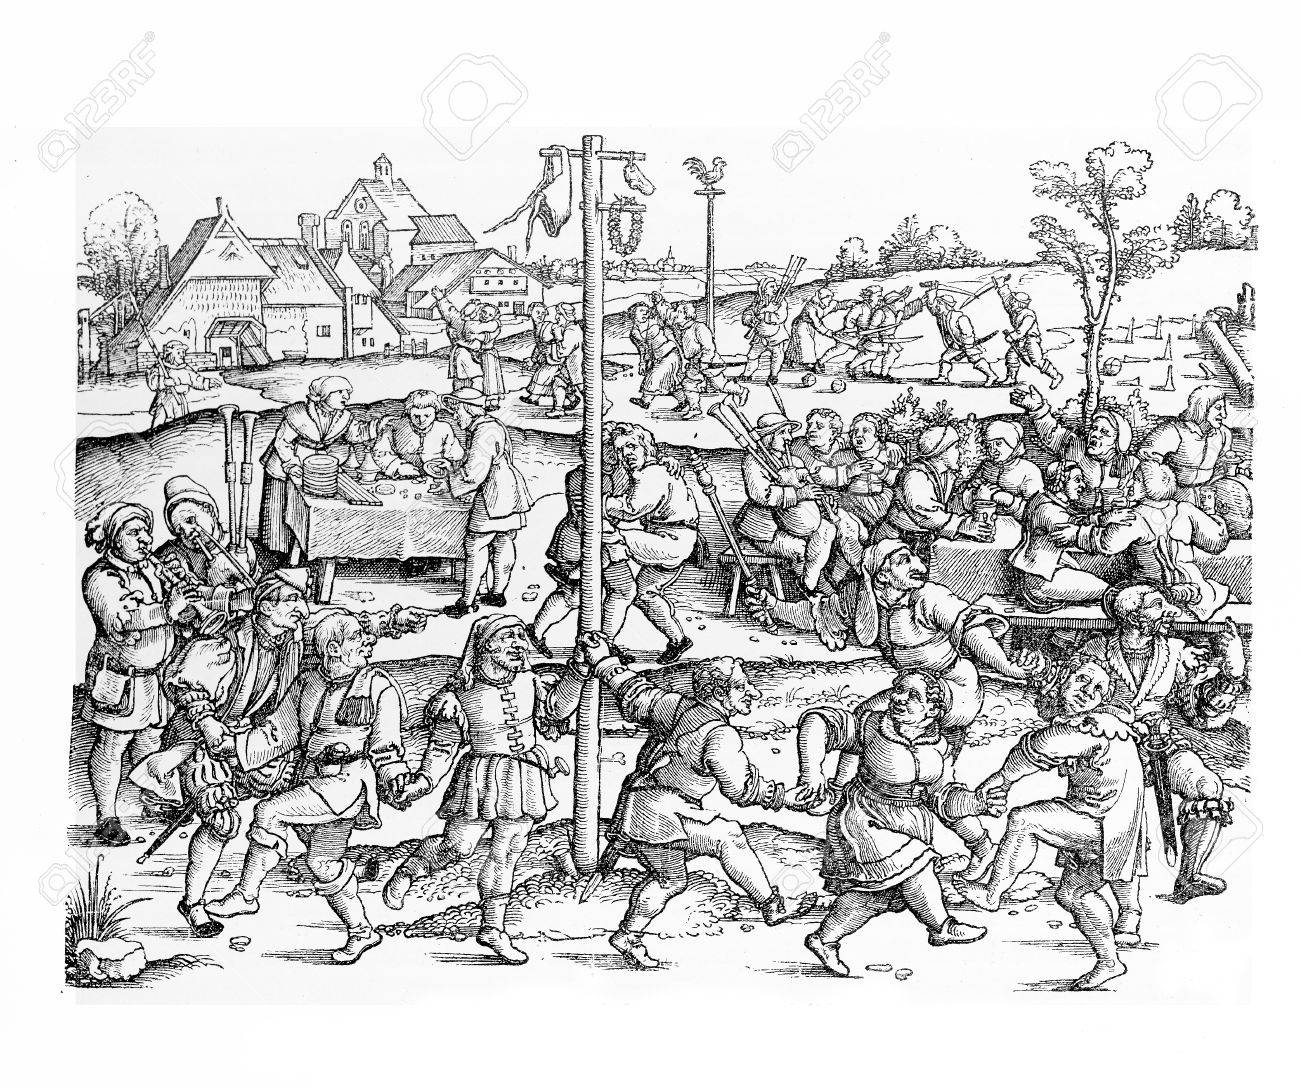 Middle ages peasant celebrate several festivals at harvest time and during the year, related to religion and nature. Stock Photo - 59306825